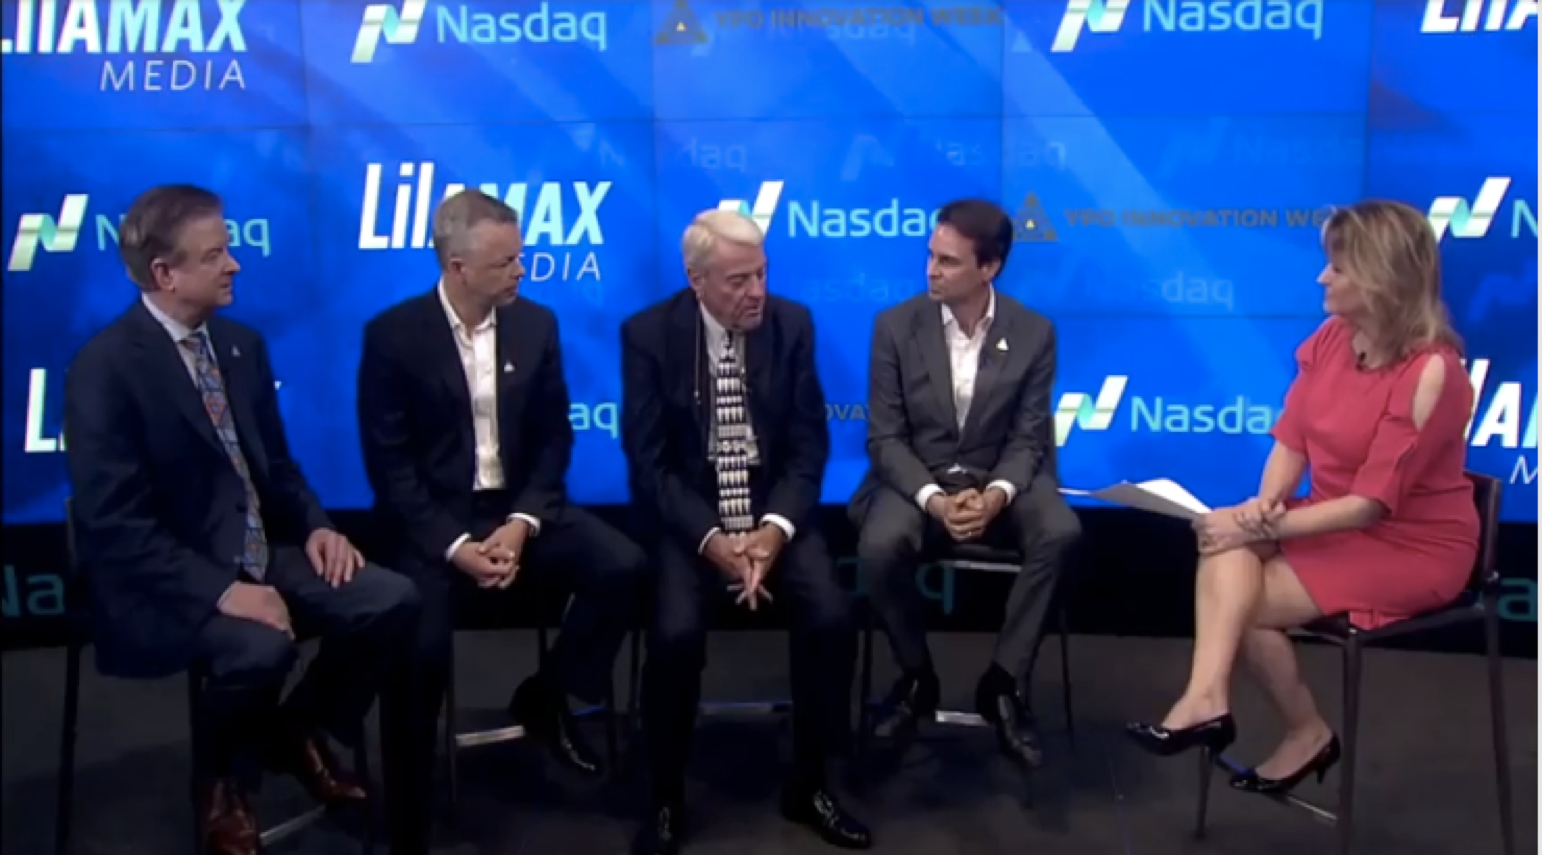 Kevin Fallon Participates in Panel Interview with Jane King at NASDAQ